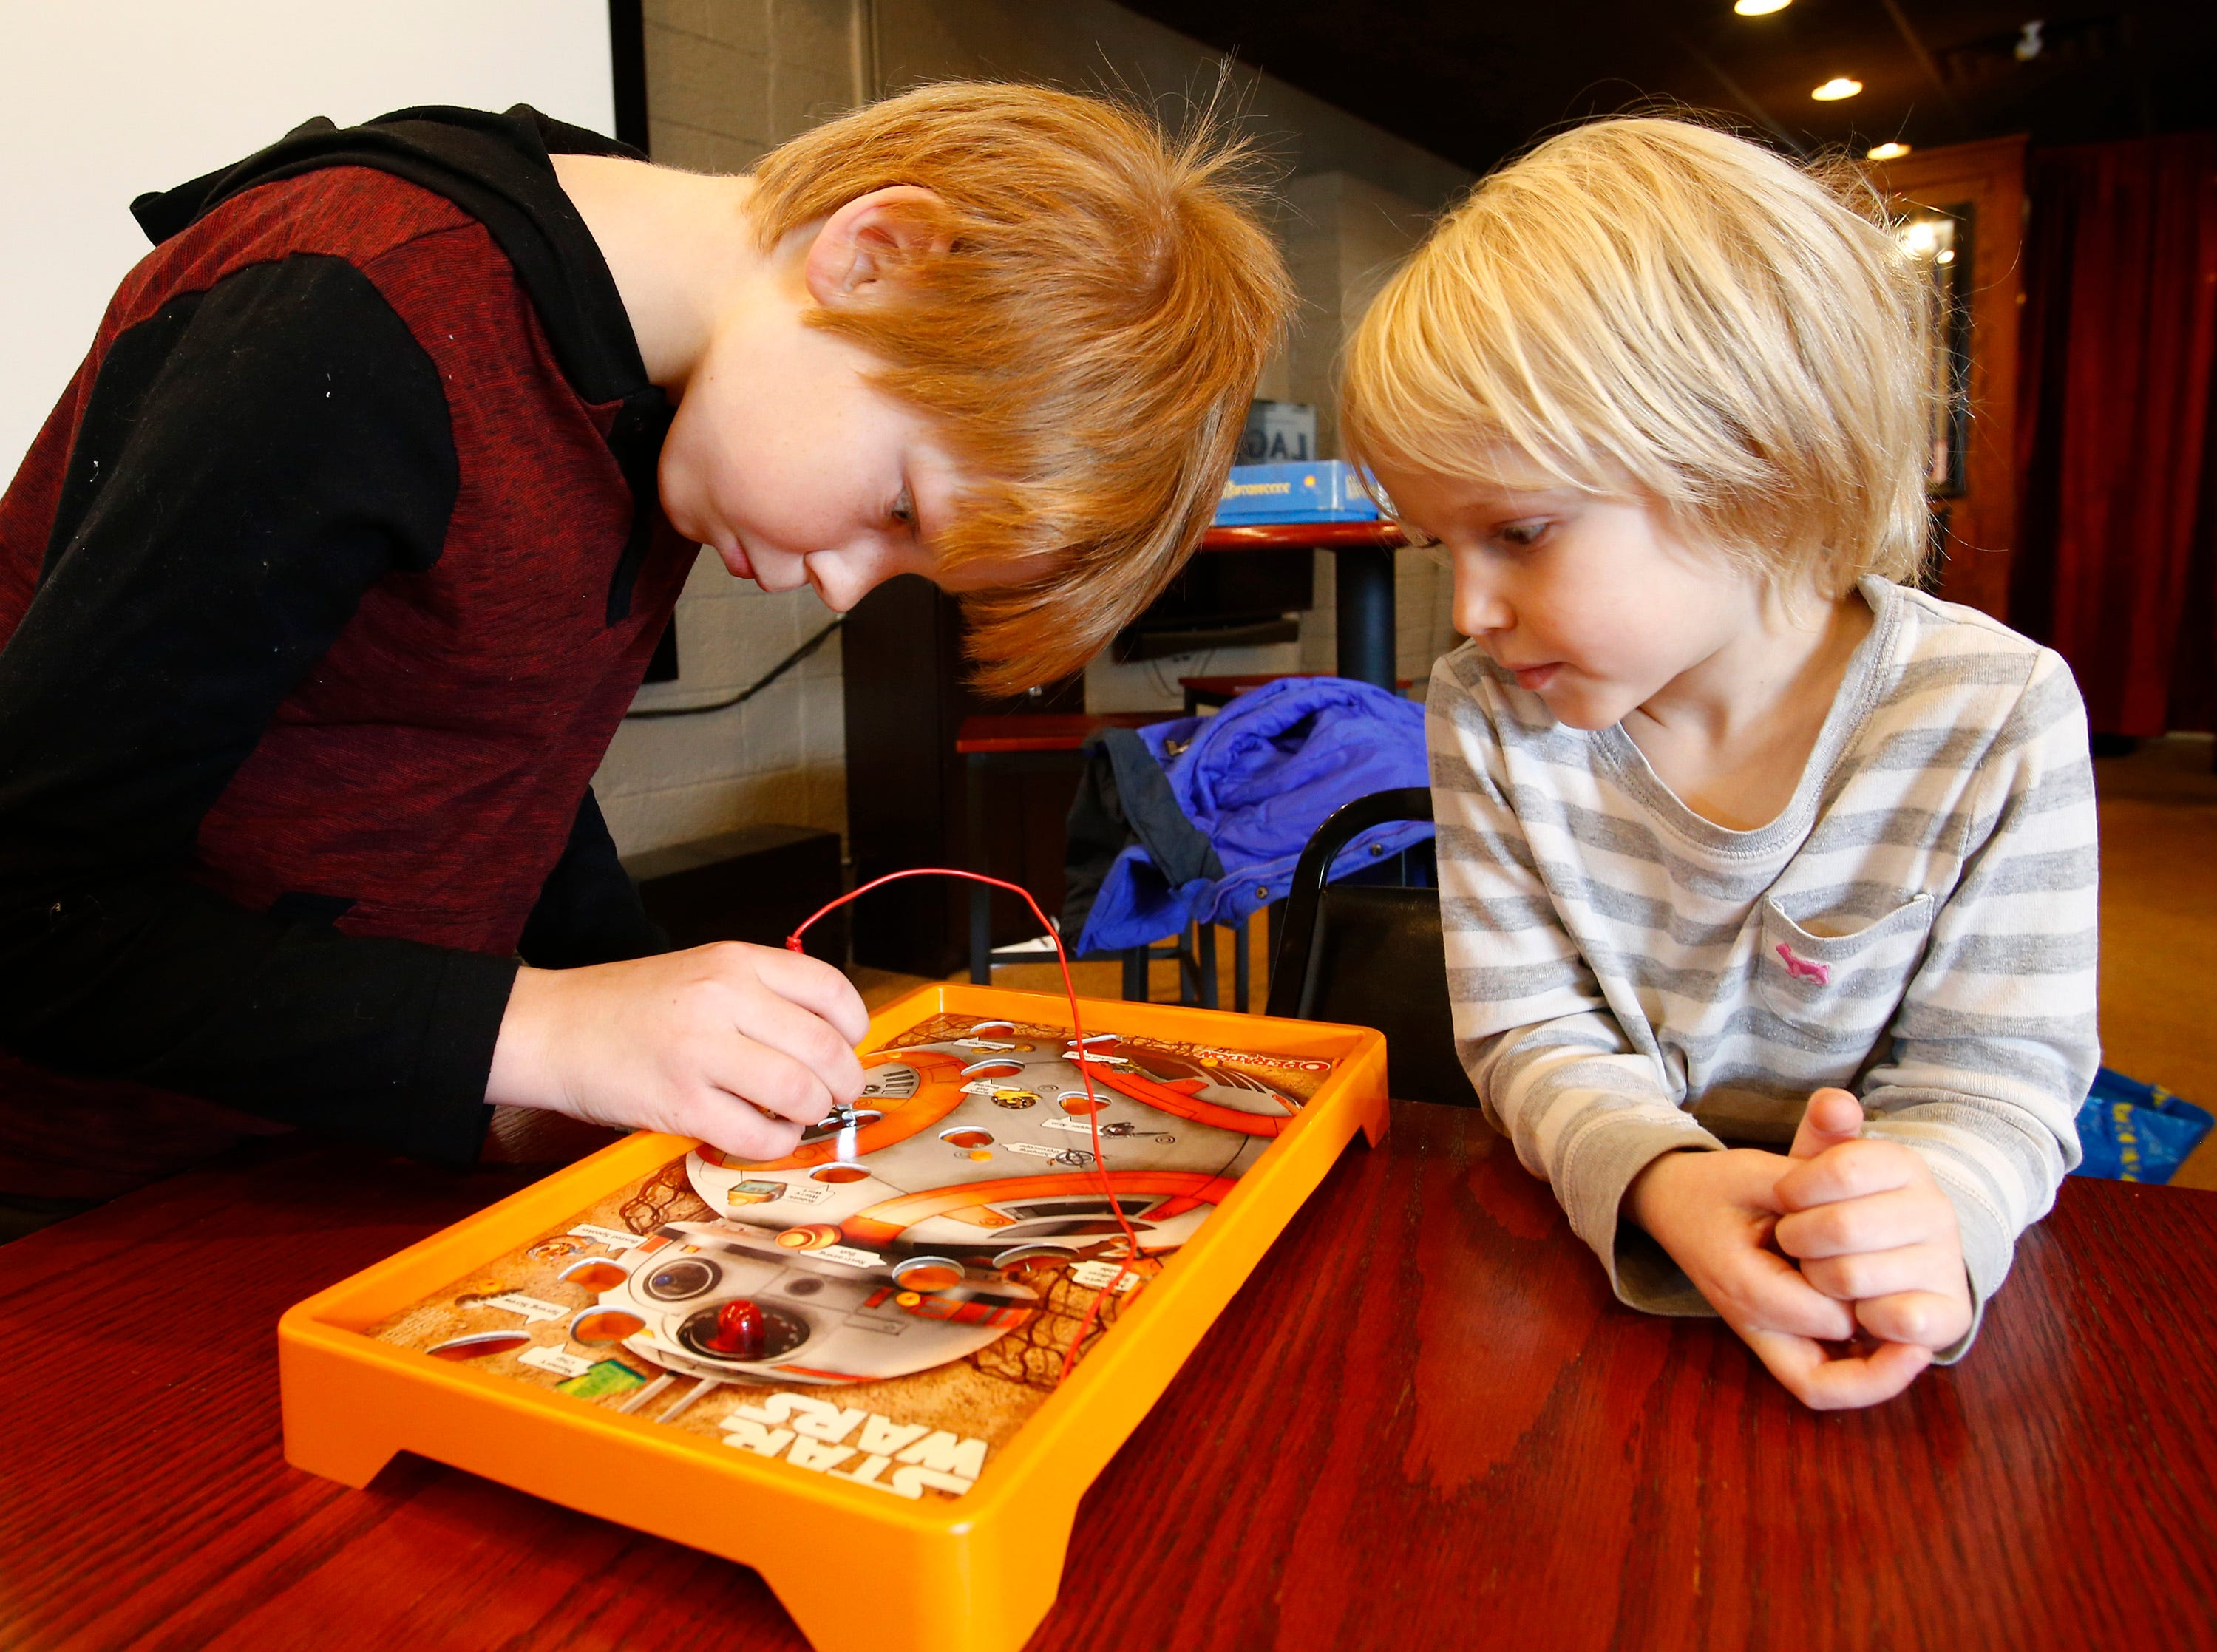 Clay (left) and Owen Skrzypchak of Kewaskum play a Star Wars version of Operation during a 12-hour Game-A-Thon hosted by FORGE, Feminist Organization for Rebel Geek Empowerment, to benefit Children's Hospital of Wisconsin at 42 Ale House in St. Francis on Nov. 3.